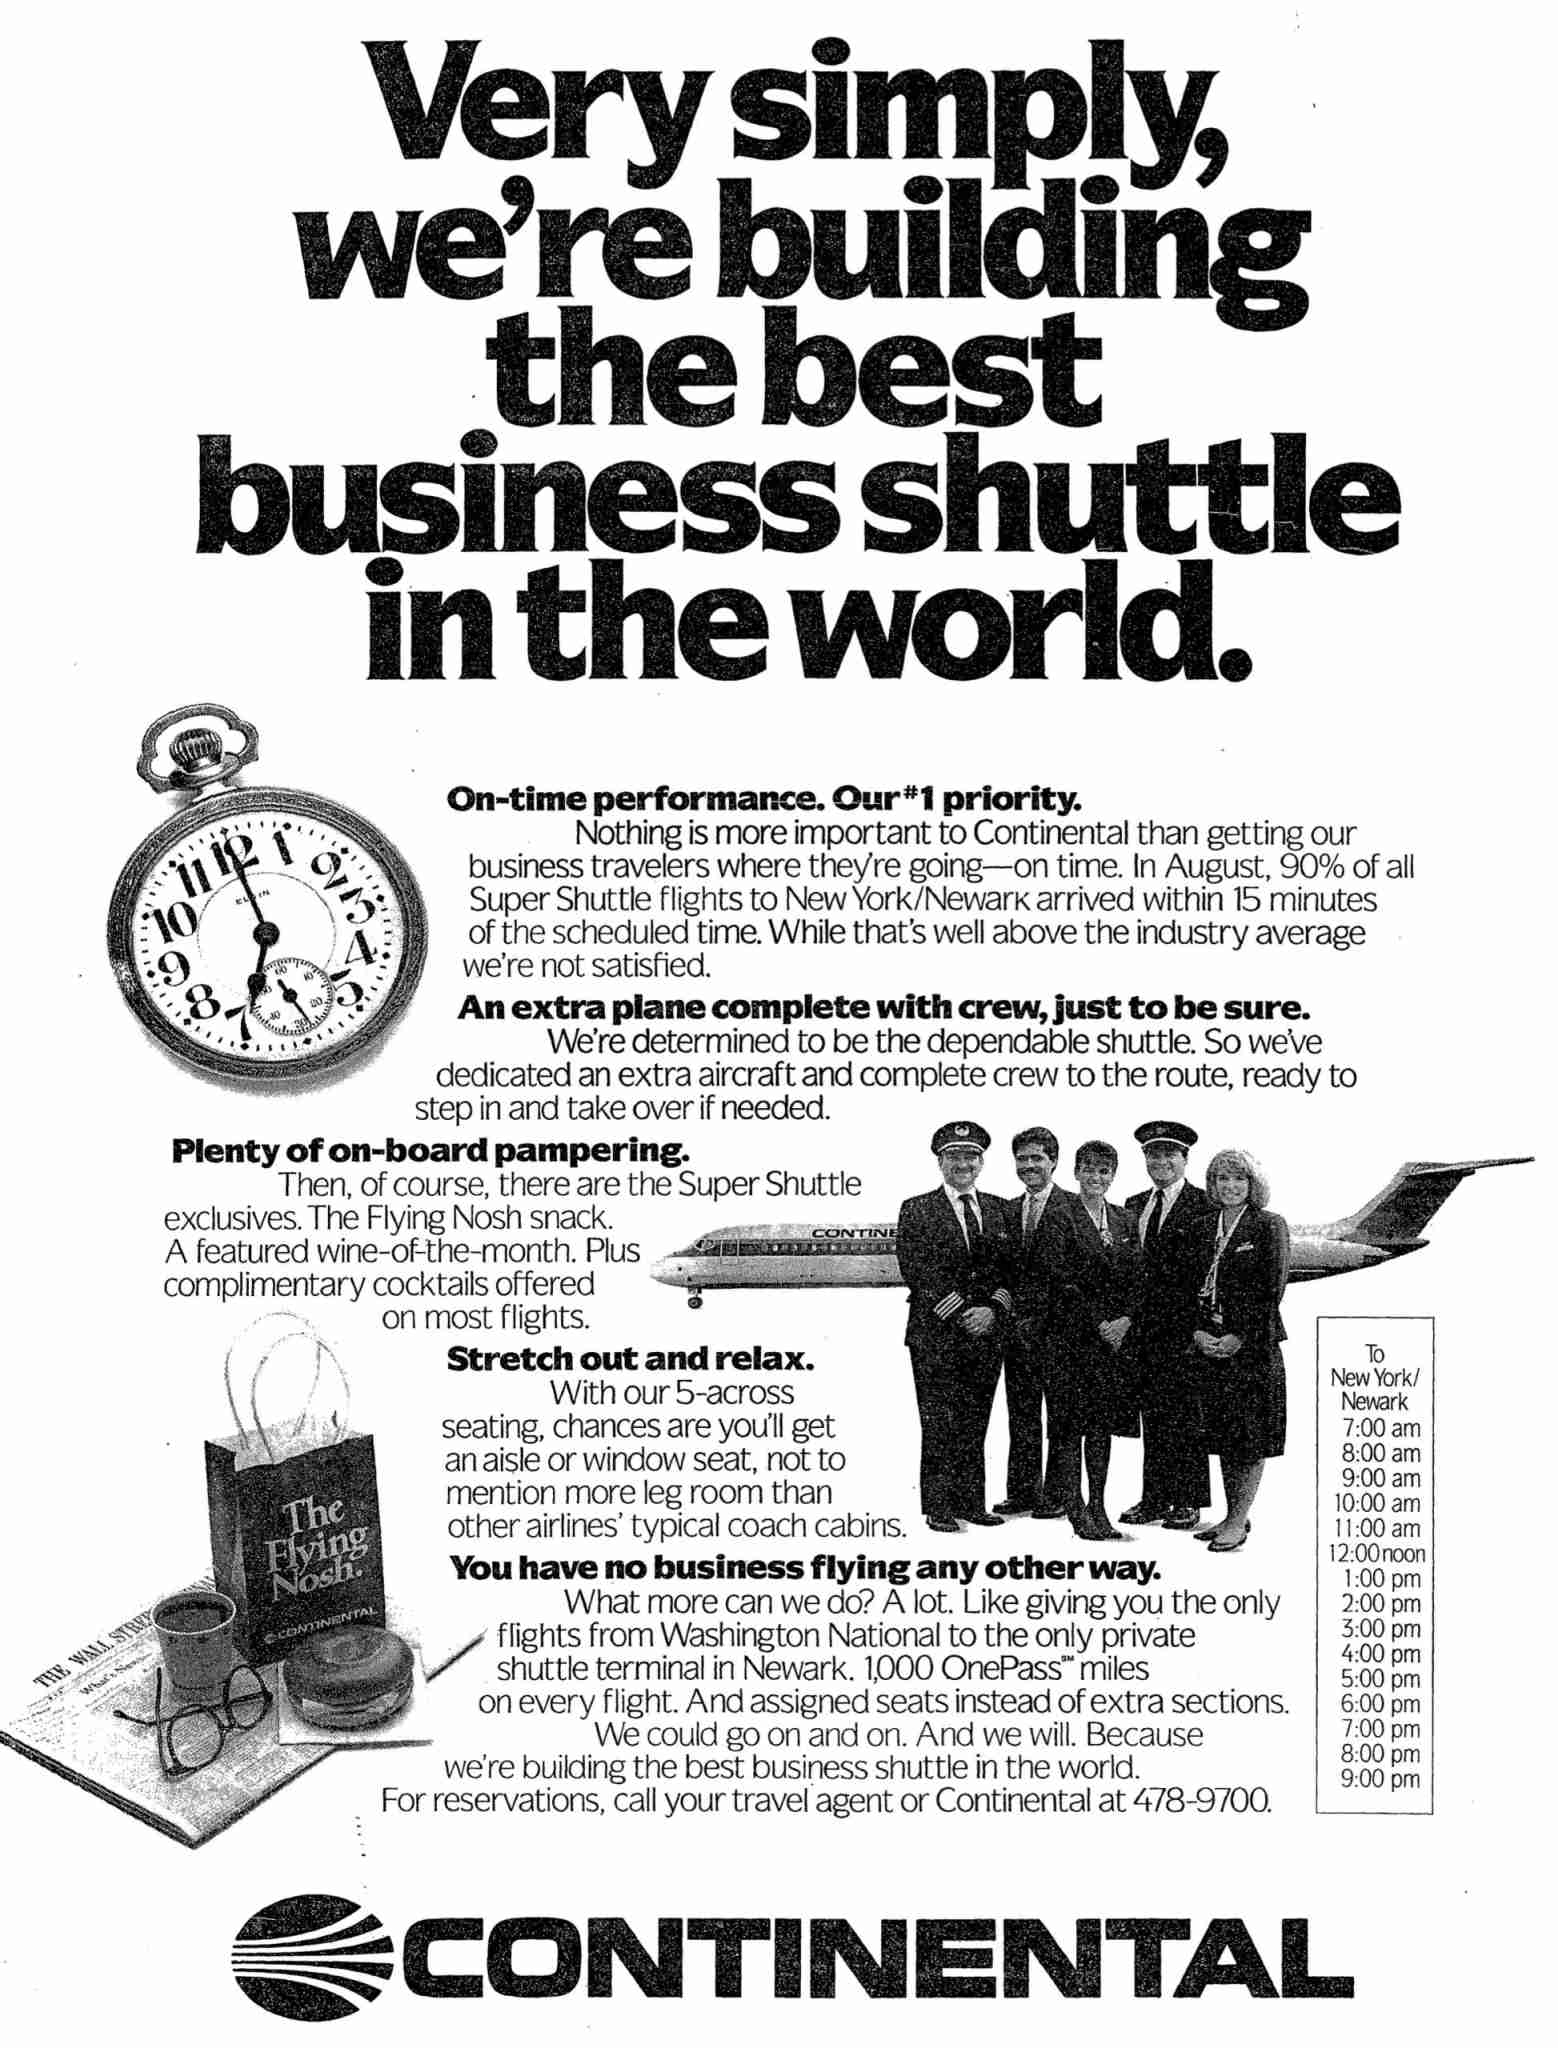 An ad for Continental Airlines